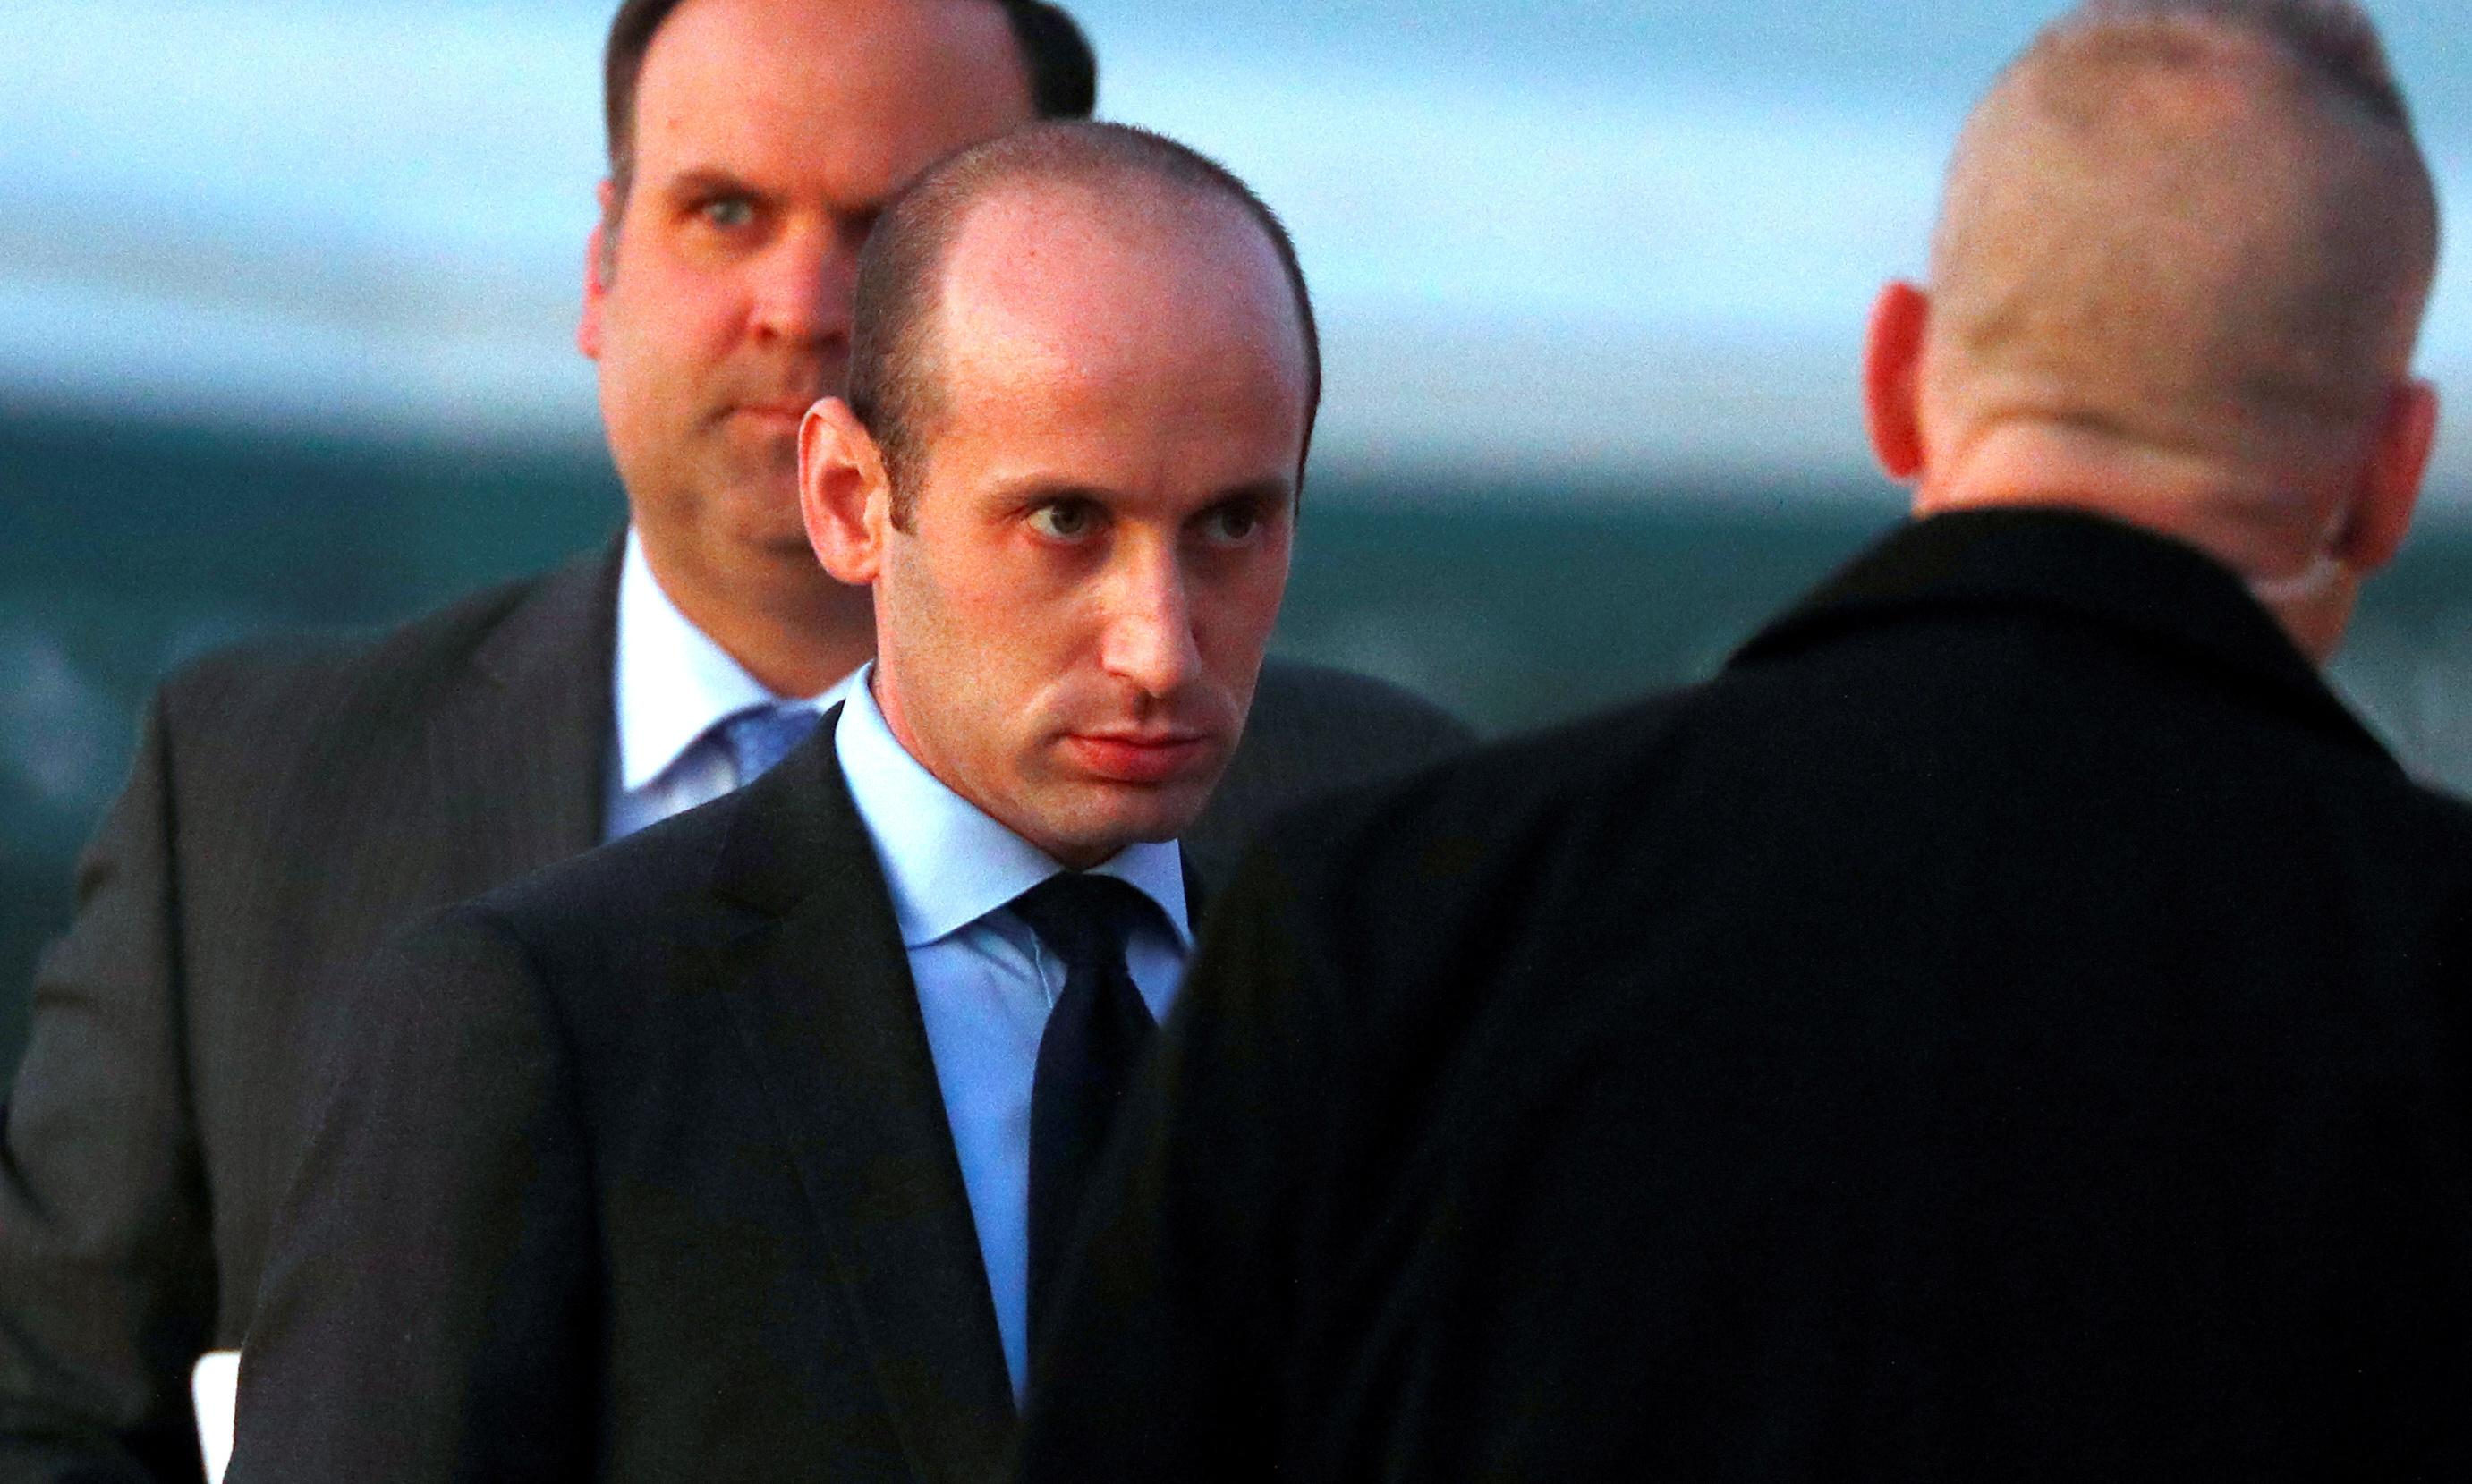 Stephen Miller is no outlier. White supremacy rules the Republican party